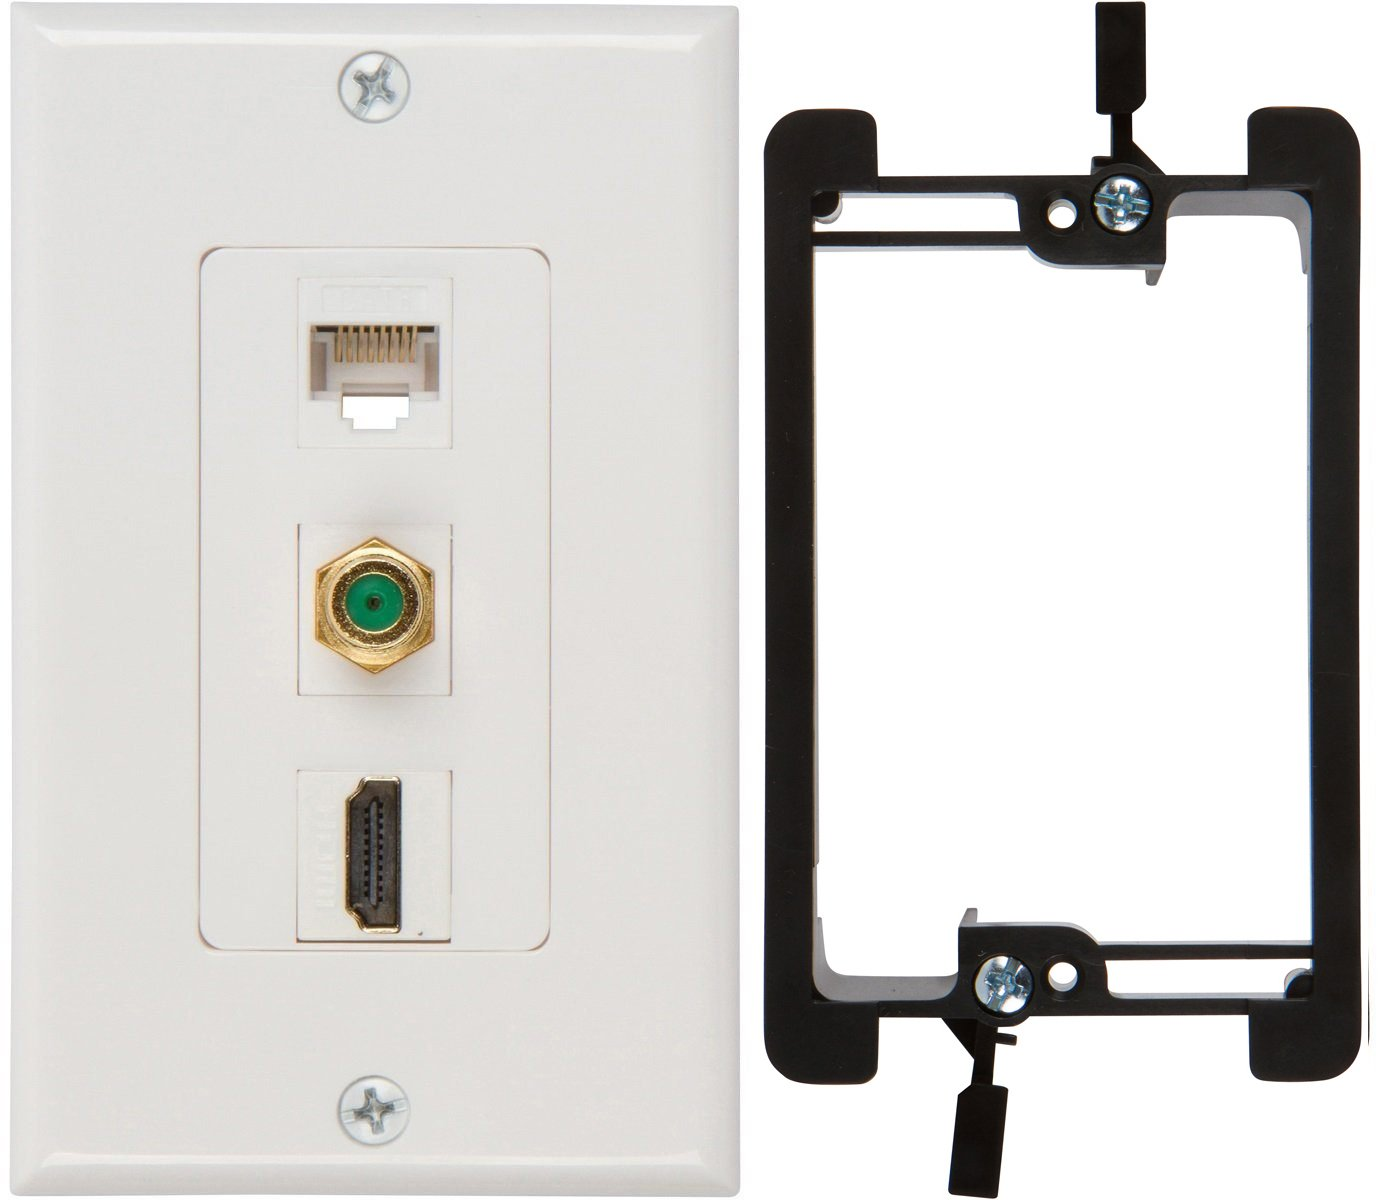 Buyer's Point HDMI 3GHz Coax Ethernet Wall Plate with Single Gang Low Voltage Mounting Bracket Device (White Kit)